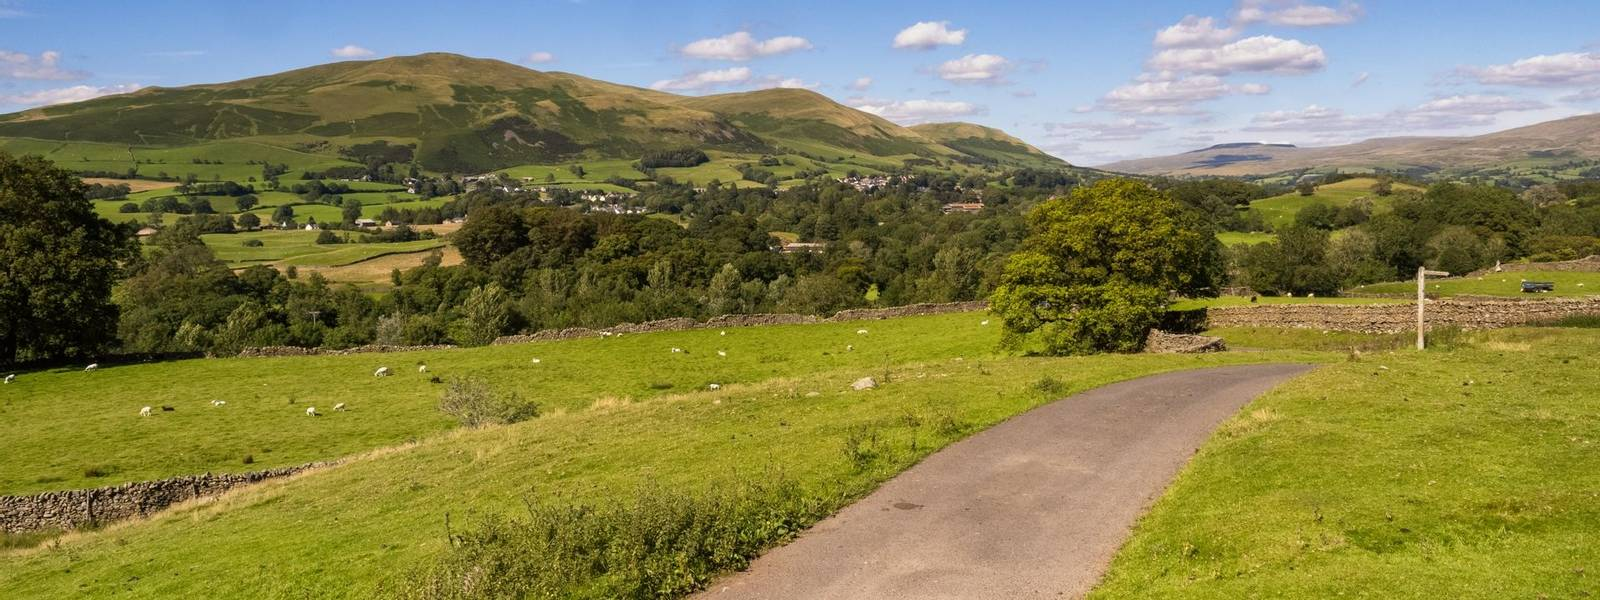 The Howgill Fells are hills in Northern England between the Lake District and the Yorkshire Dales, lying roughly in between …